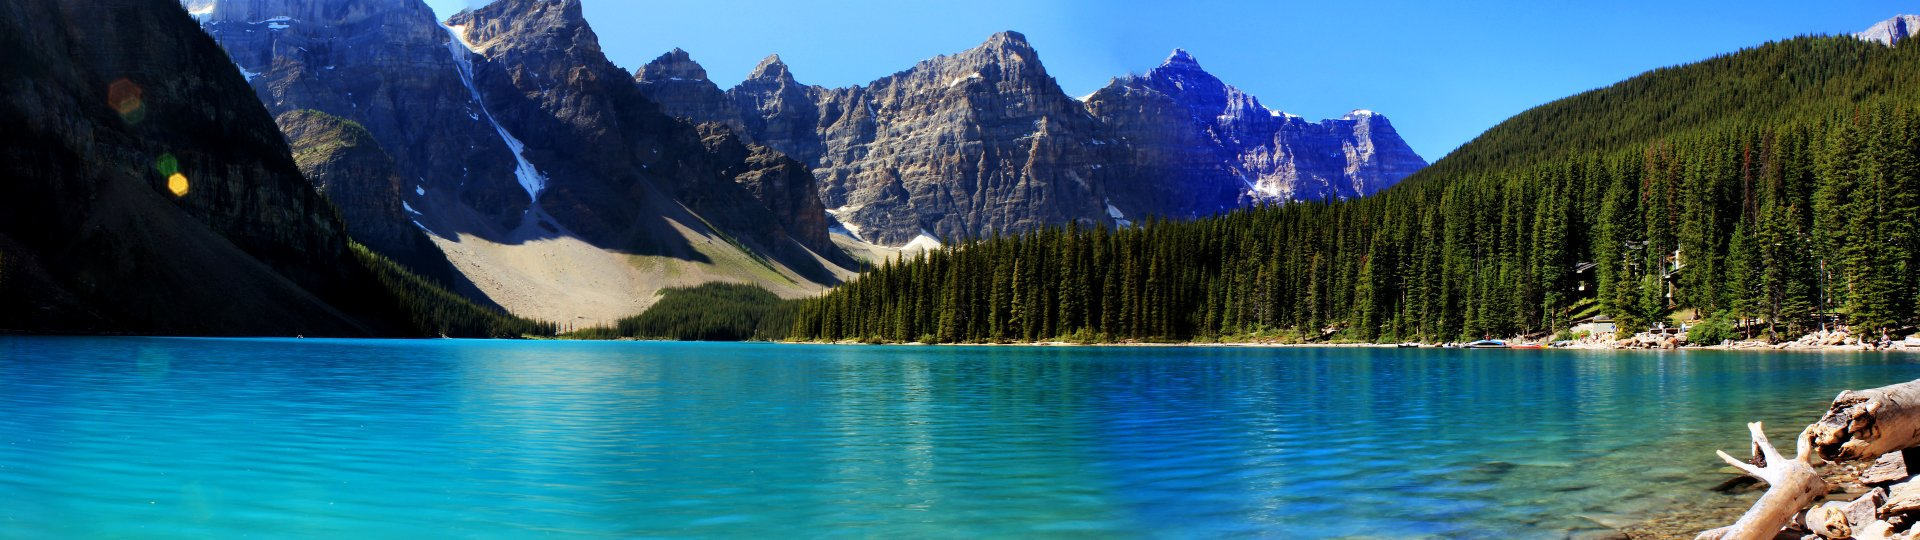 Earth - Moraine Lake  Canada Wallpaper